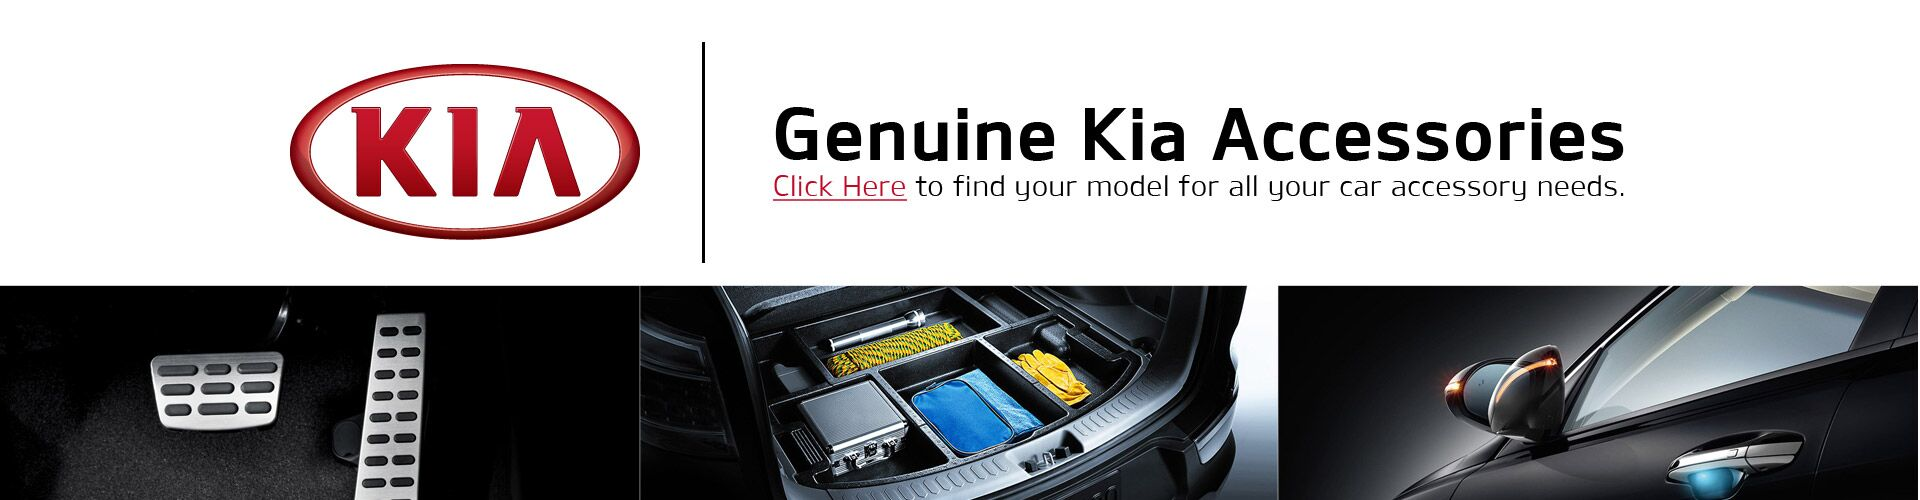 Genuine Kia Accessories